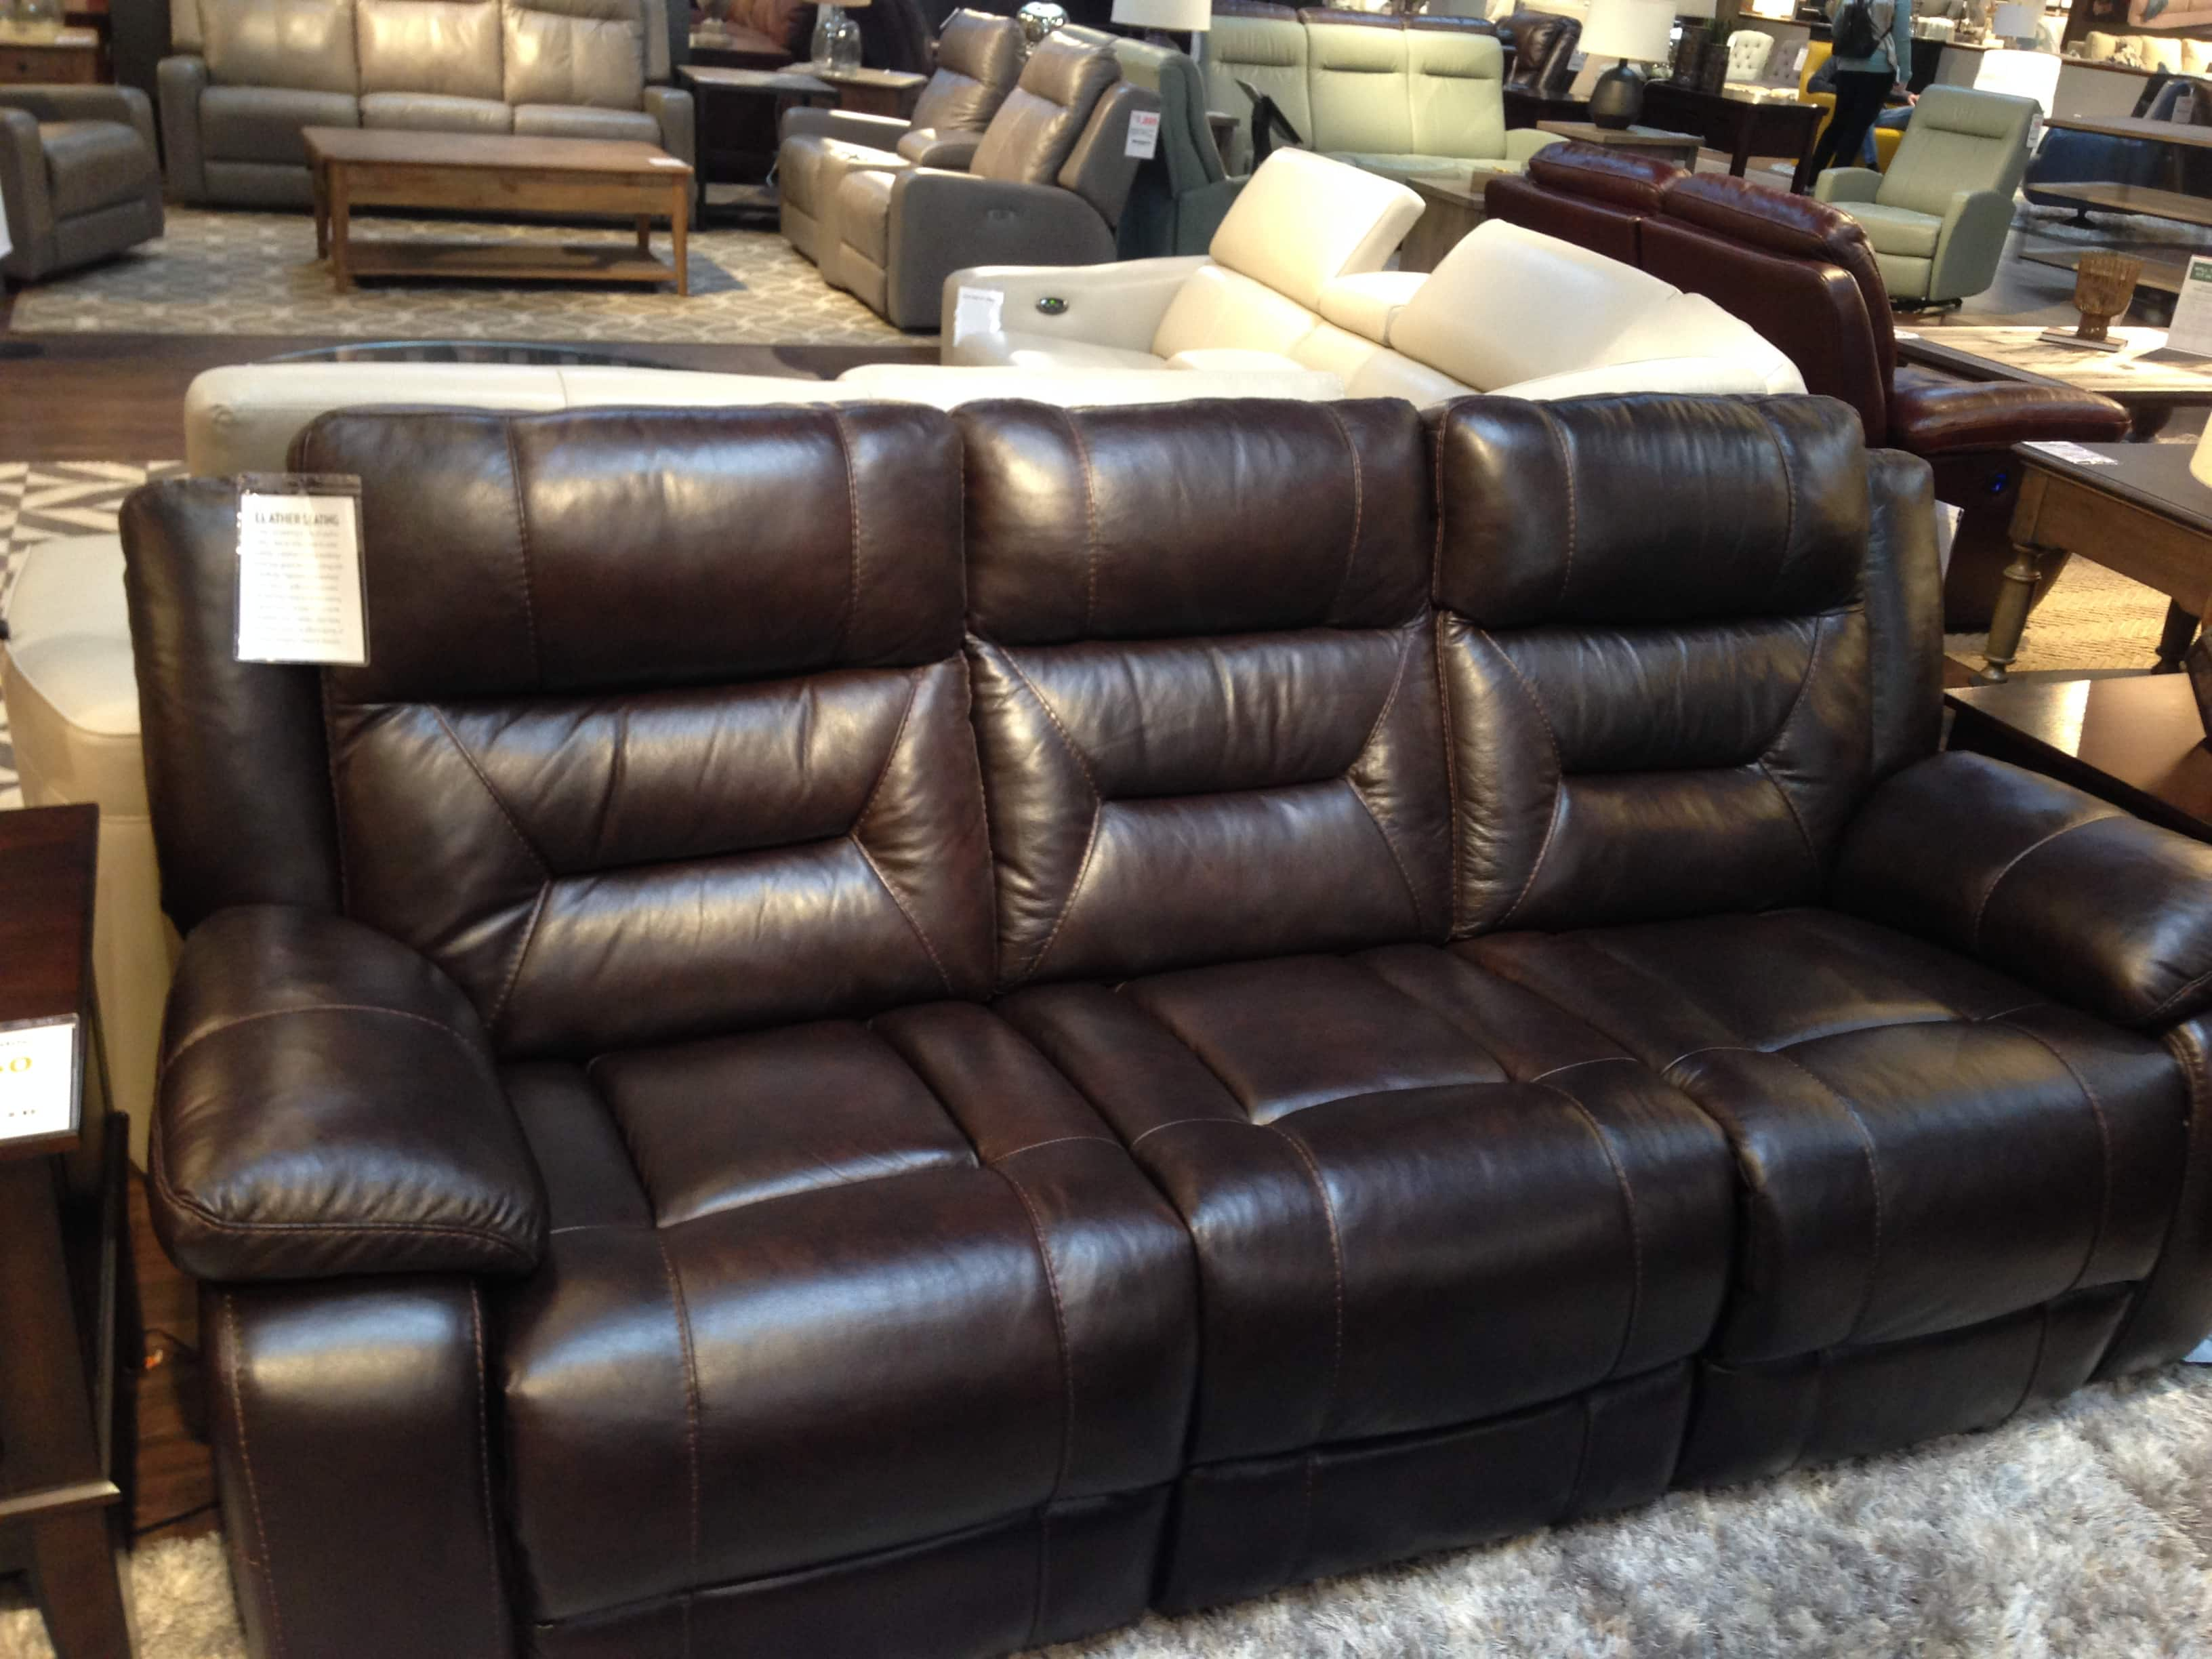 costco leather chairs folding bowl chair pulaski sofa and love seat for 1500 plus